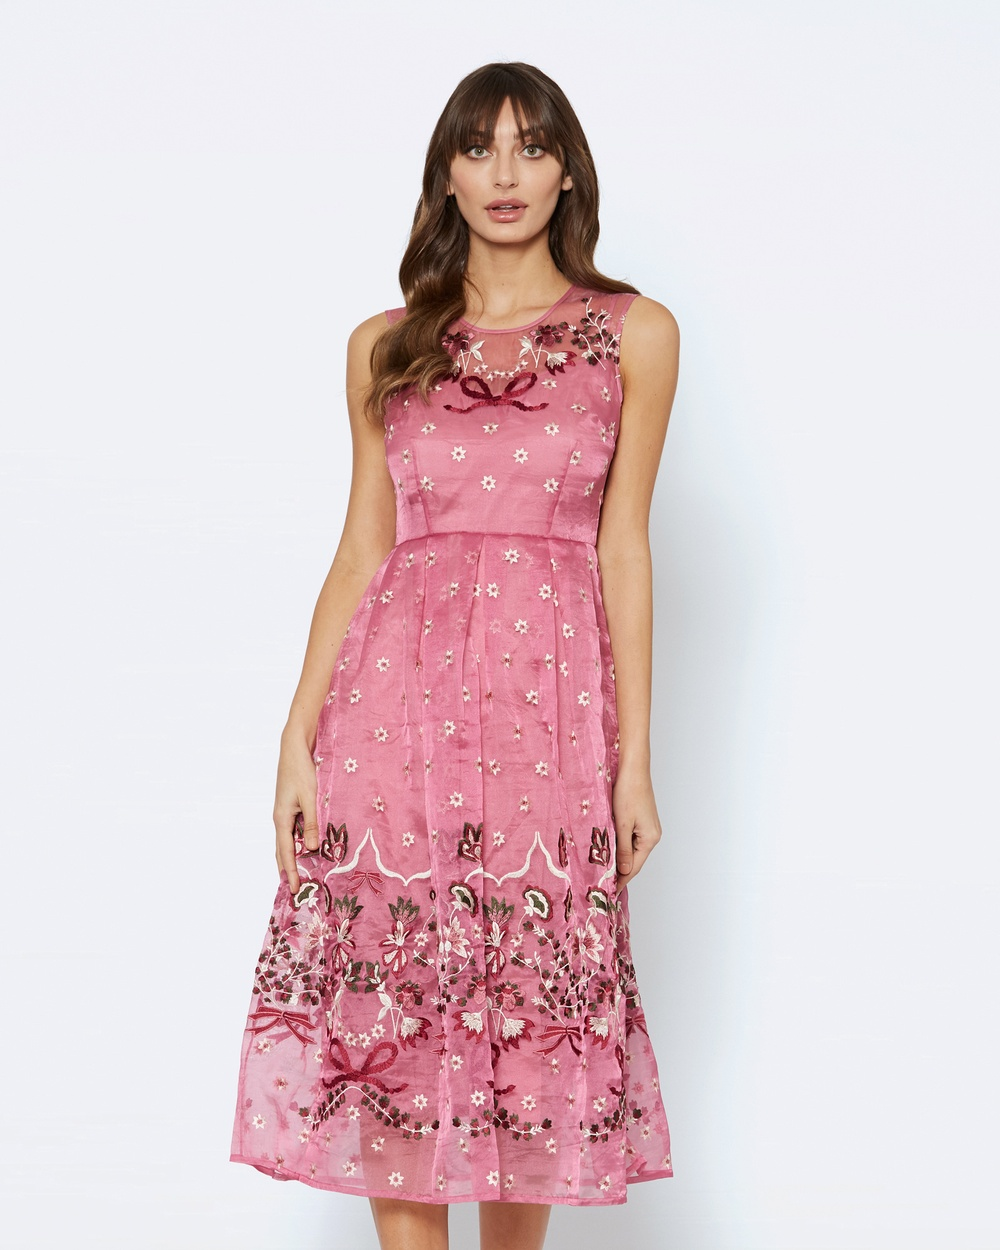 Alannah Hill Flower Paradise Dress Dresses Pink Flower Paradise Dress